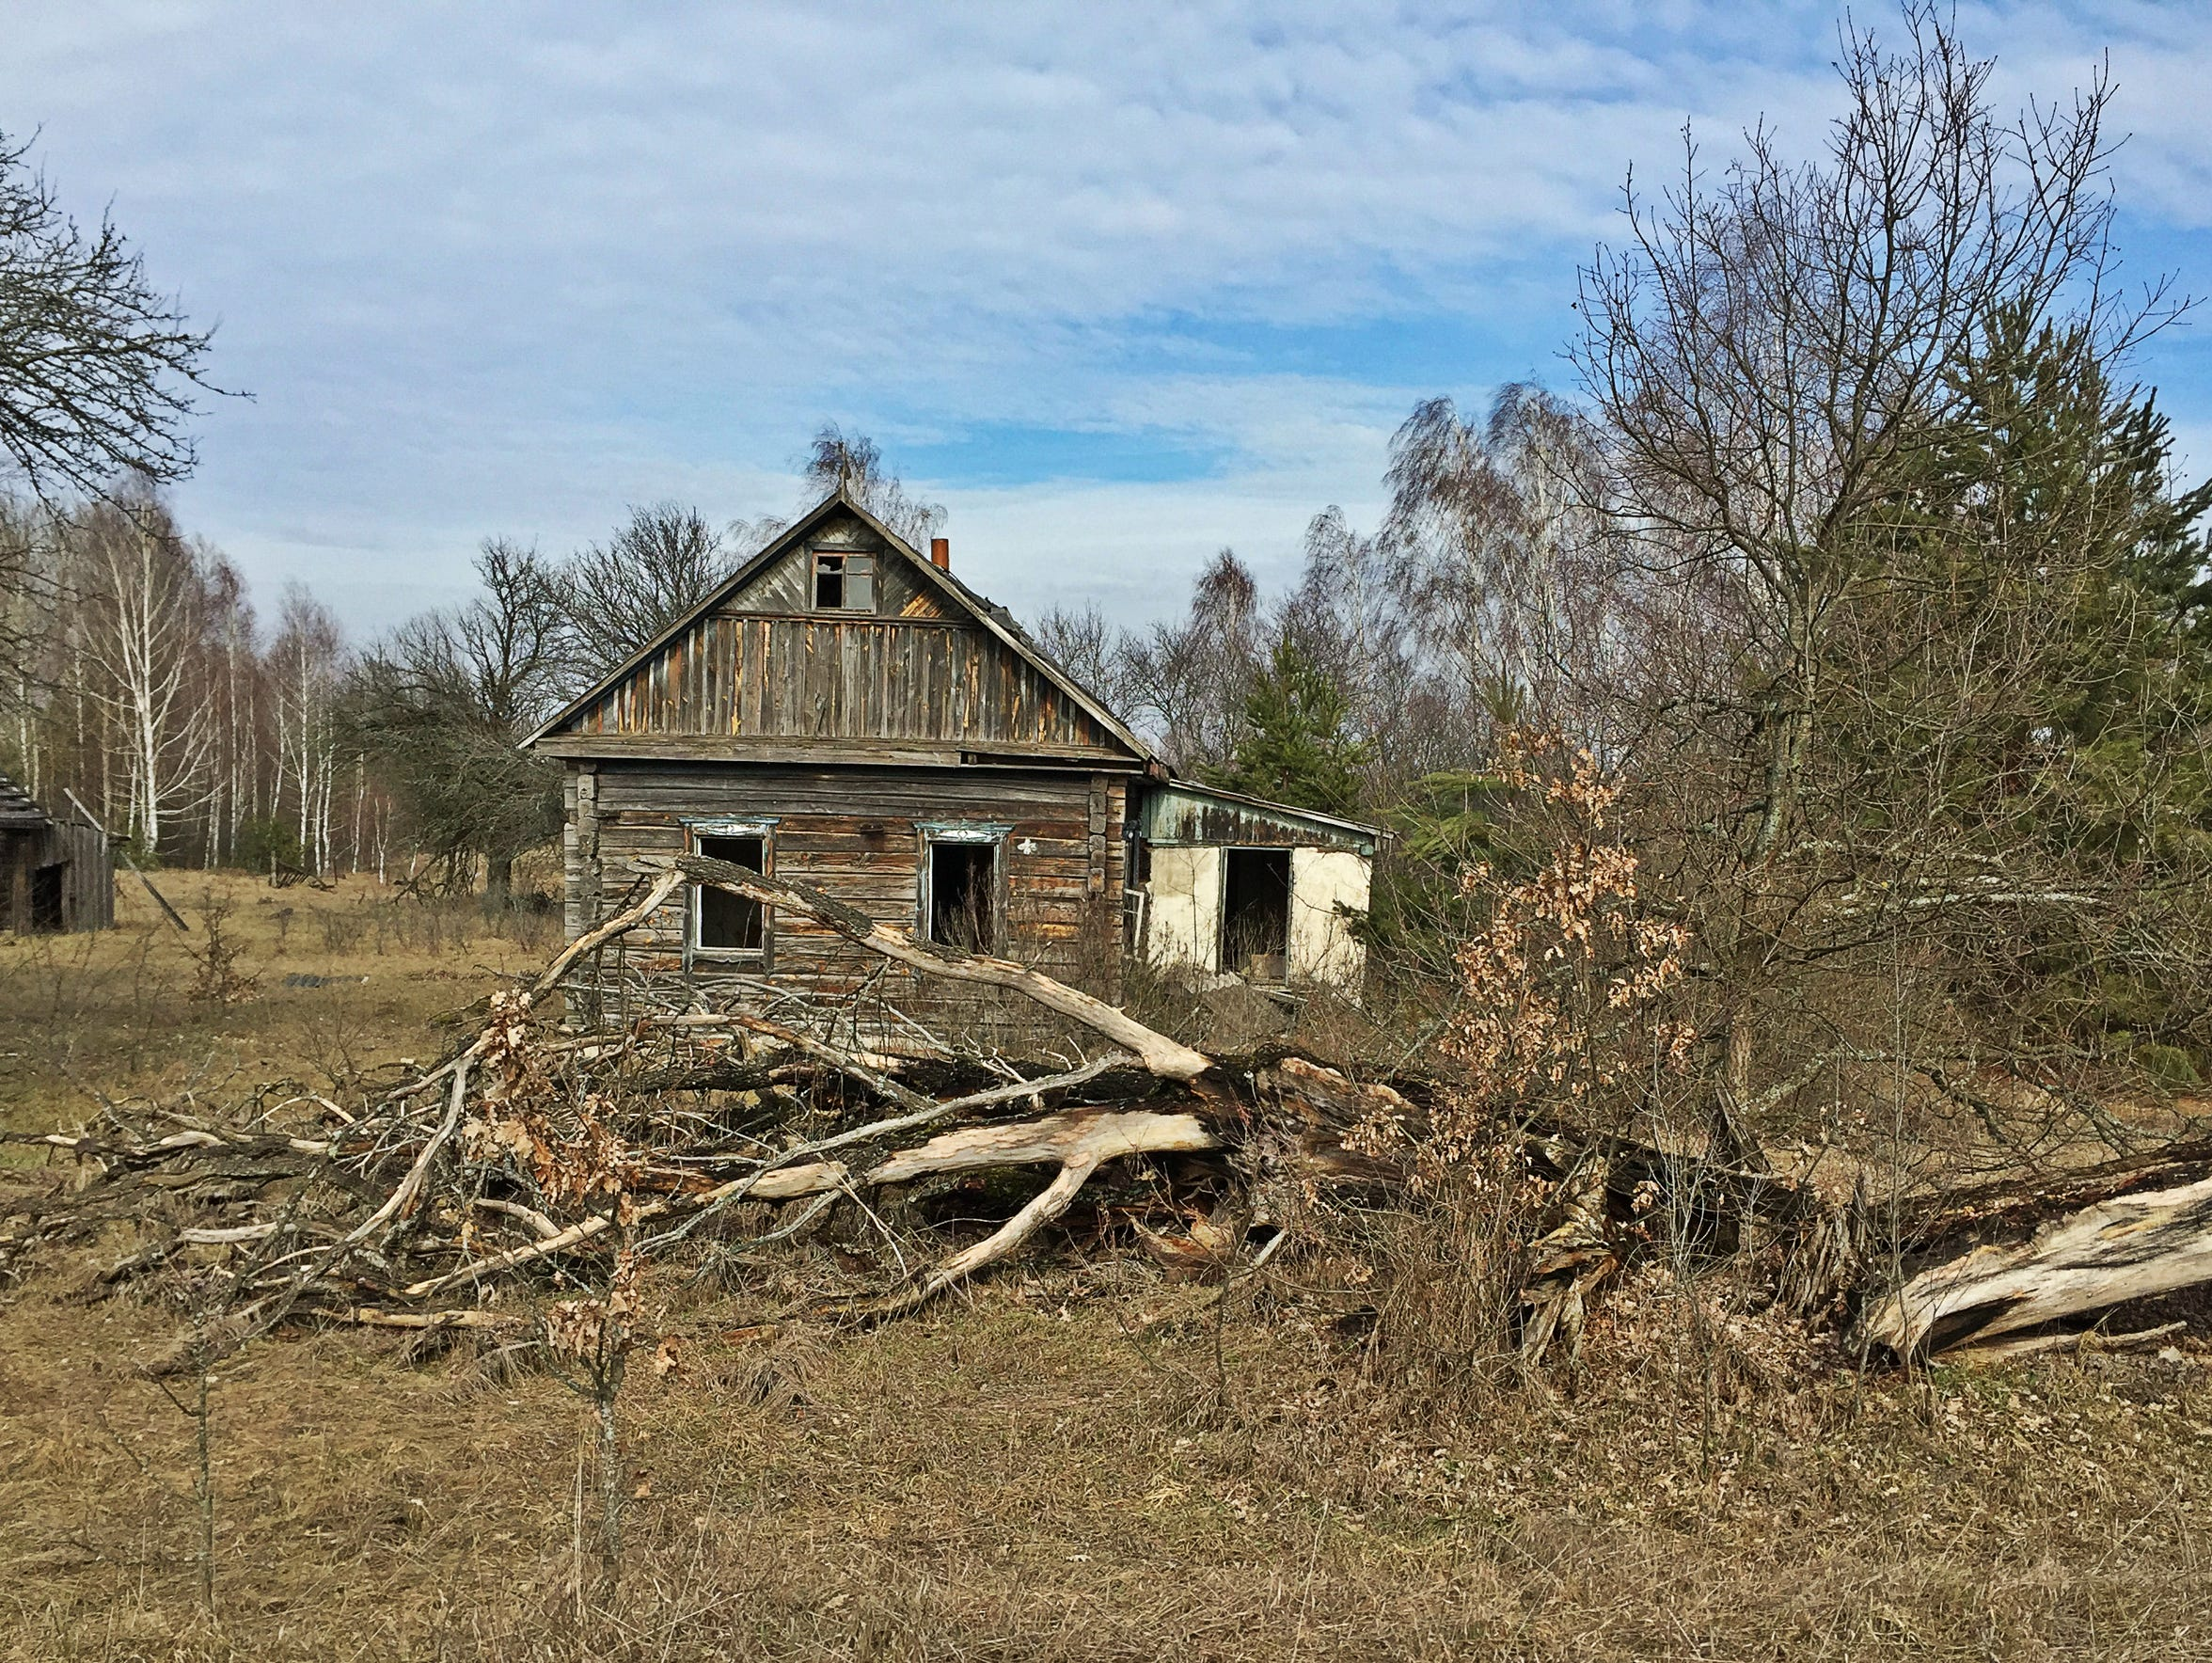 A derelict house inside the Exclusion Zone in Belarus.